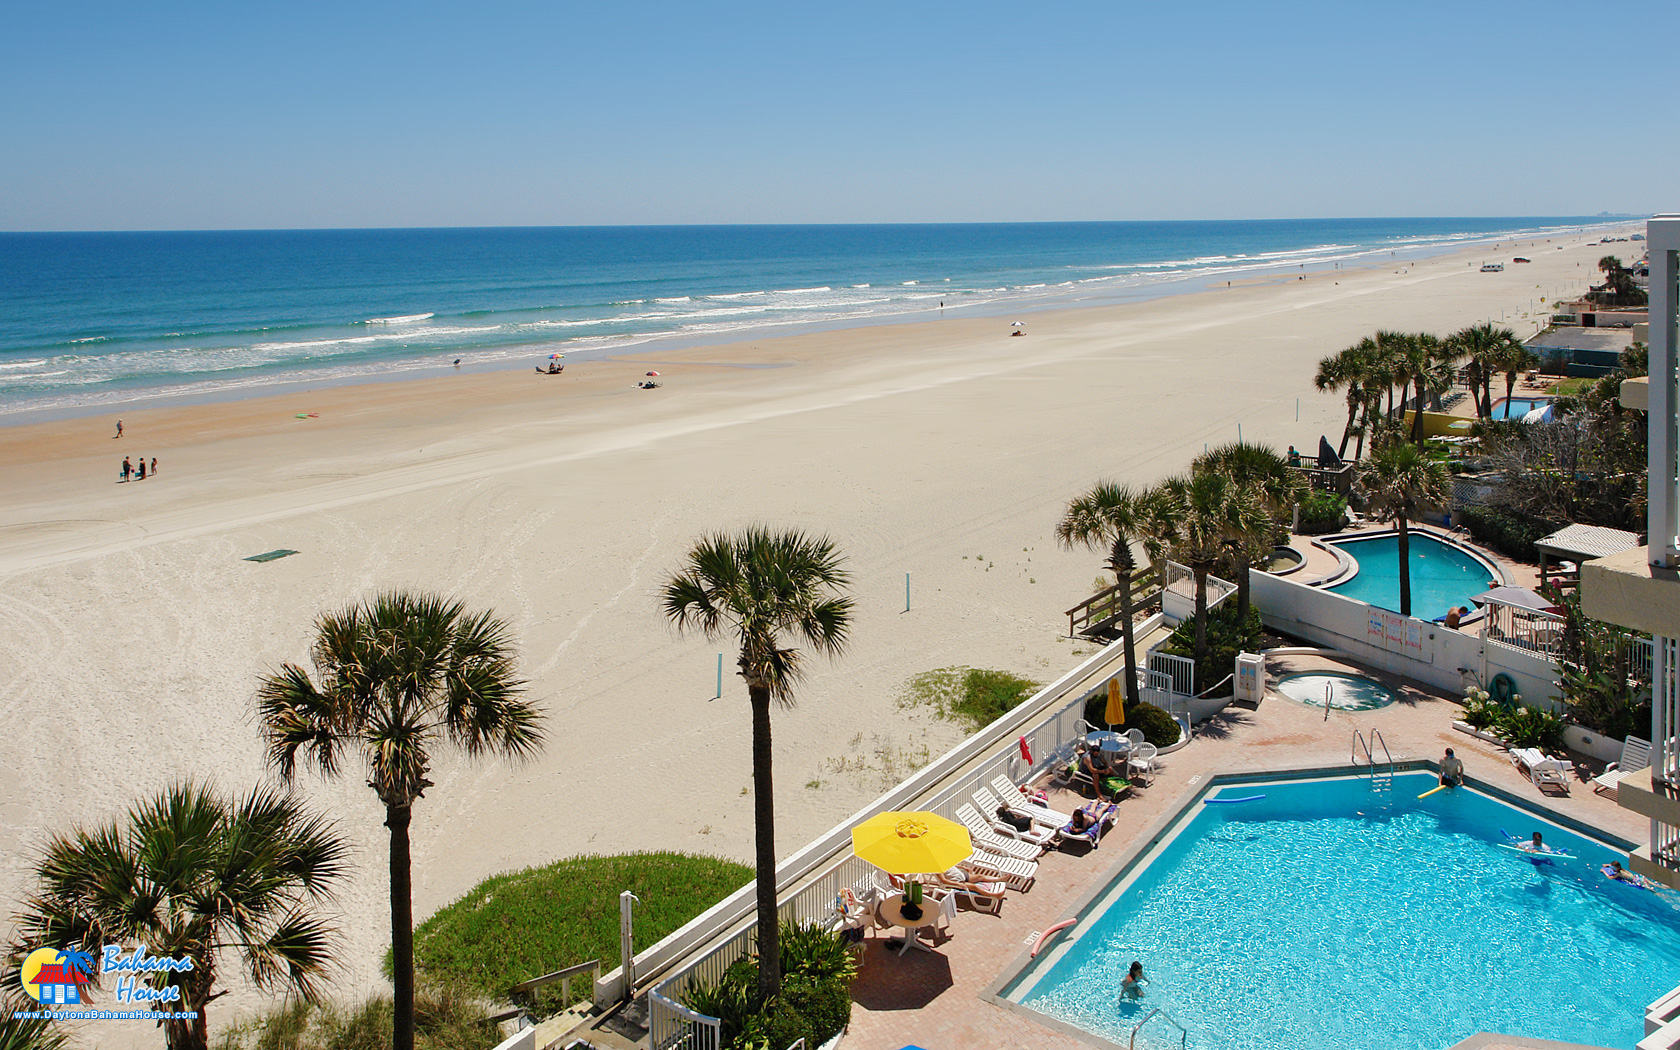 Daytona beach florida packages for Winter vacations in florida